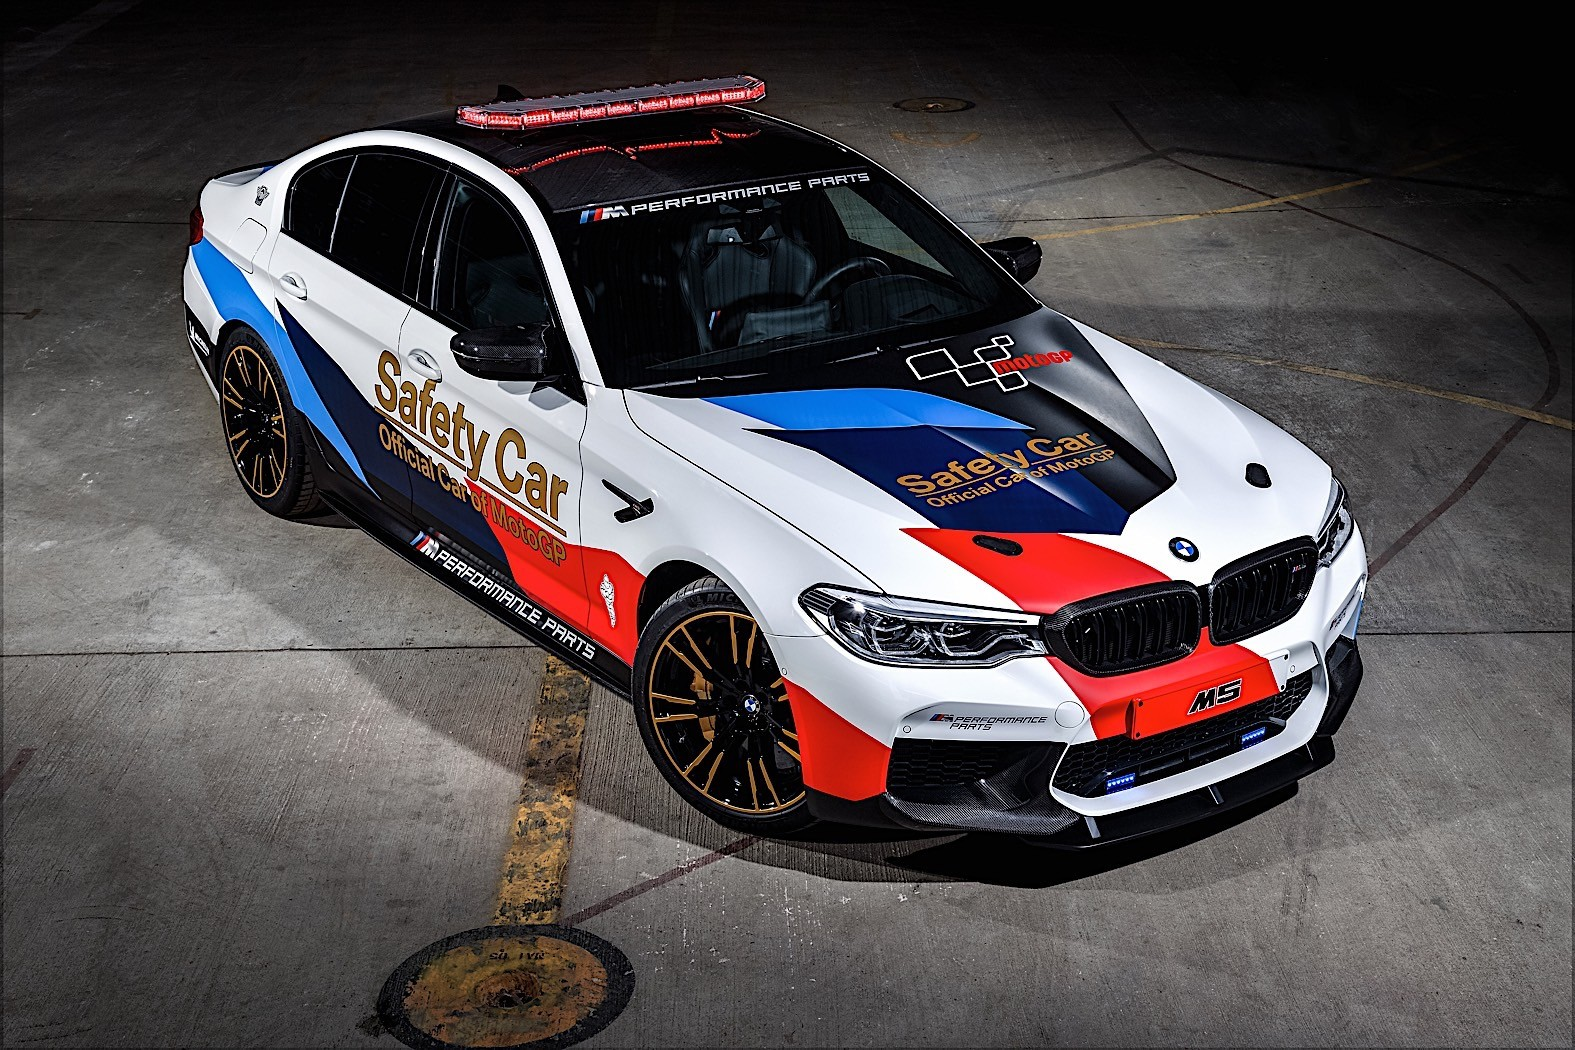 2018 bmw m5 motogp safety car gets ready for season start autoevolution. Black Bedroom Furniture Sets. Home Design Ideas